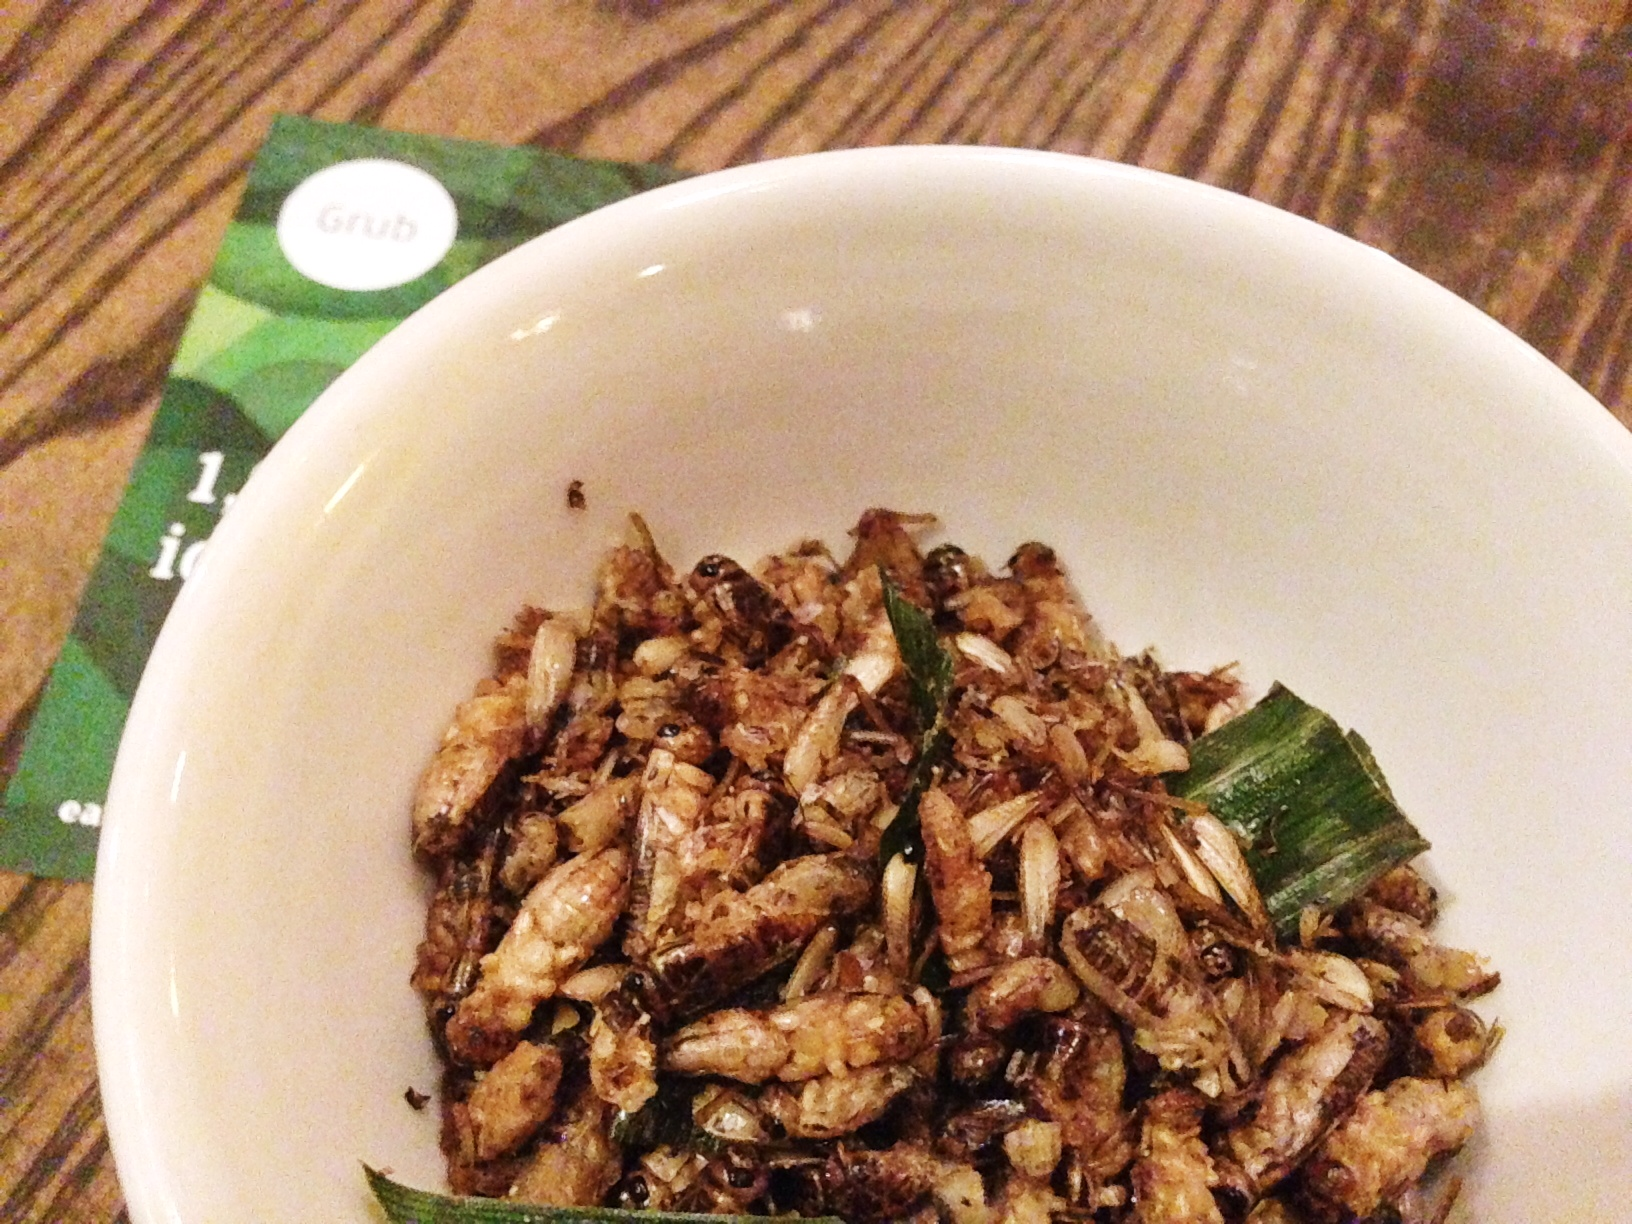 Eat Grub Review - soy crickets